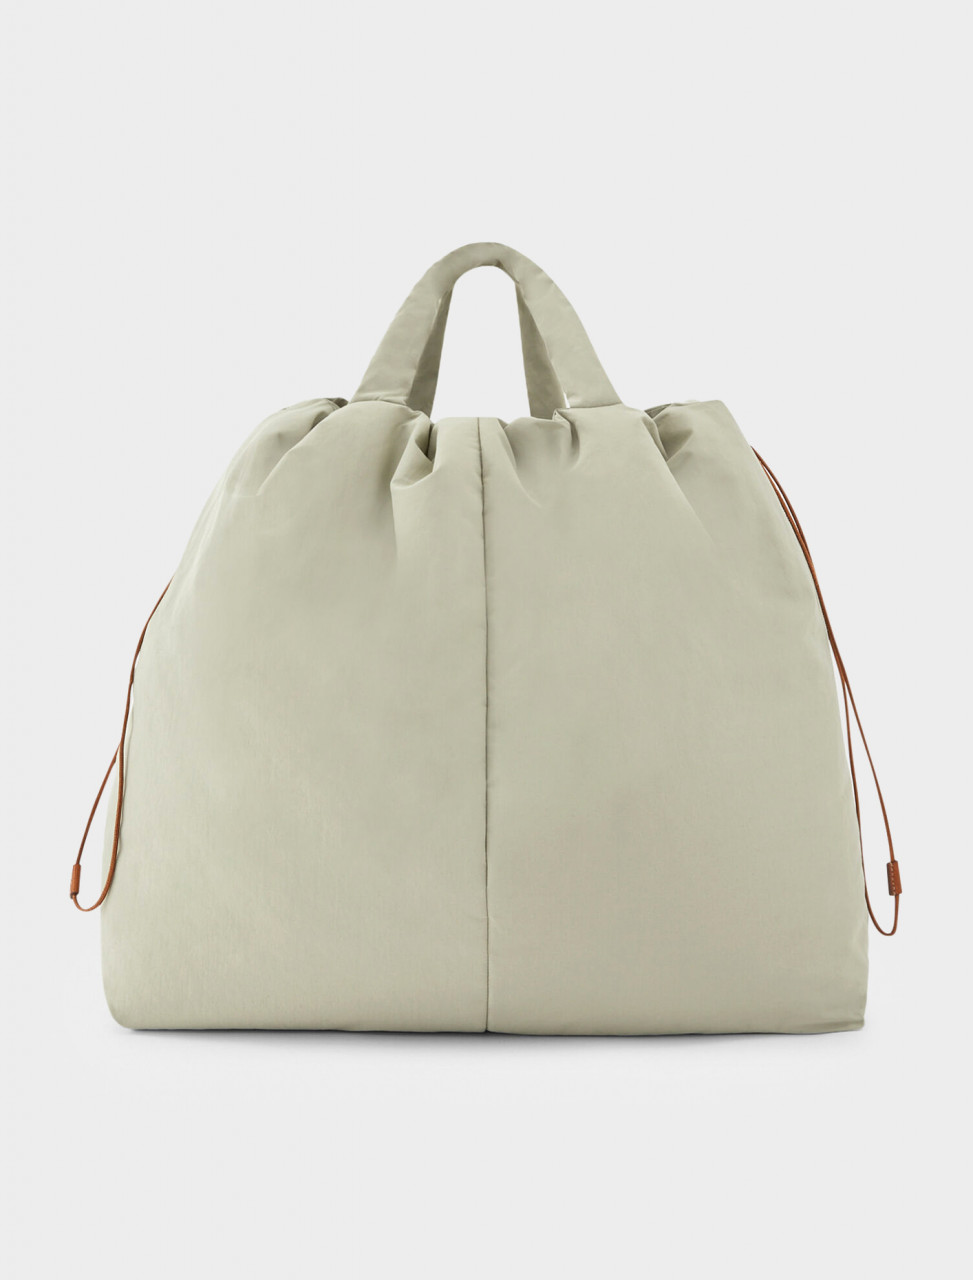 130-JPPR853009-WRB30267-330 JIL SANDER PADDED TOTE BAG WITH STRAP AND DRAWSTRING CLOSURE